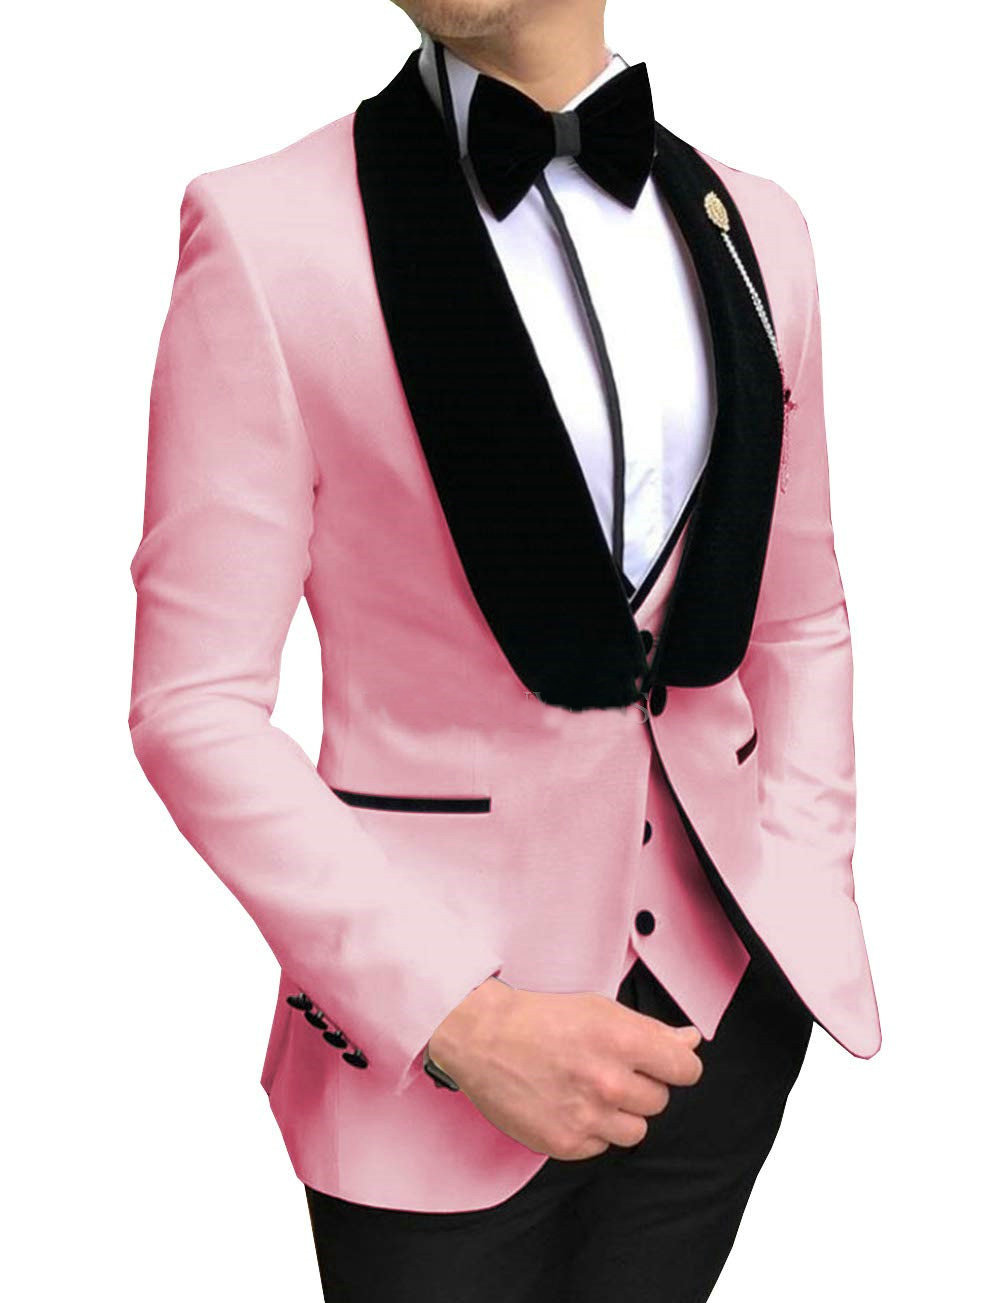 2020 Fashionable One Button Pink Groom Tuxedos Groomsmen Black Velvet Shawl Lapel Mens Wedding Suits Blazers (Jacket+Pants+Vest)